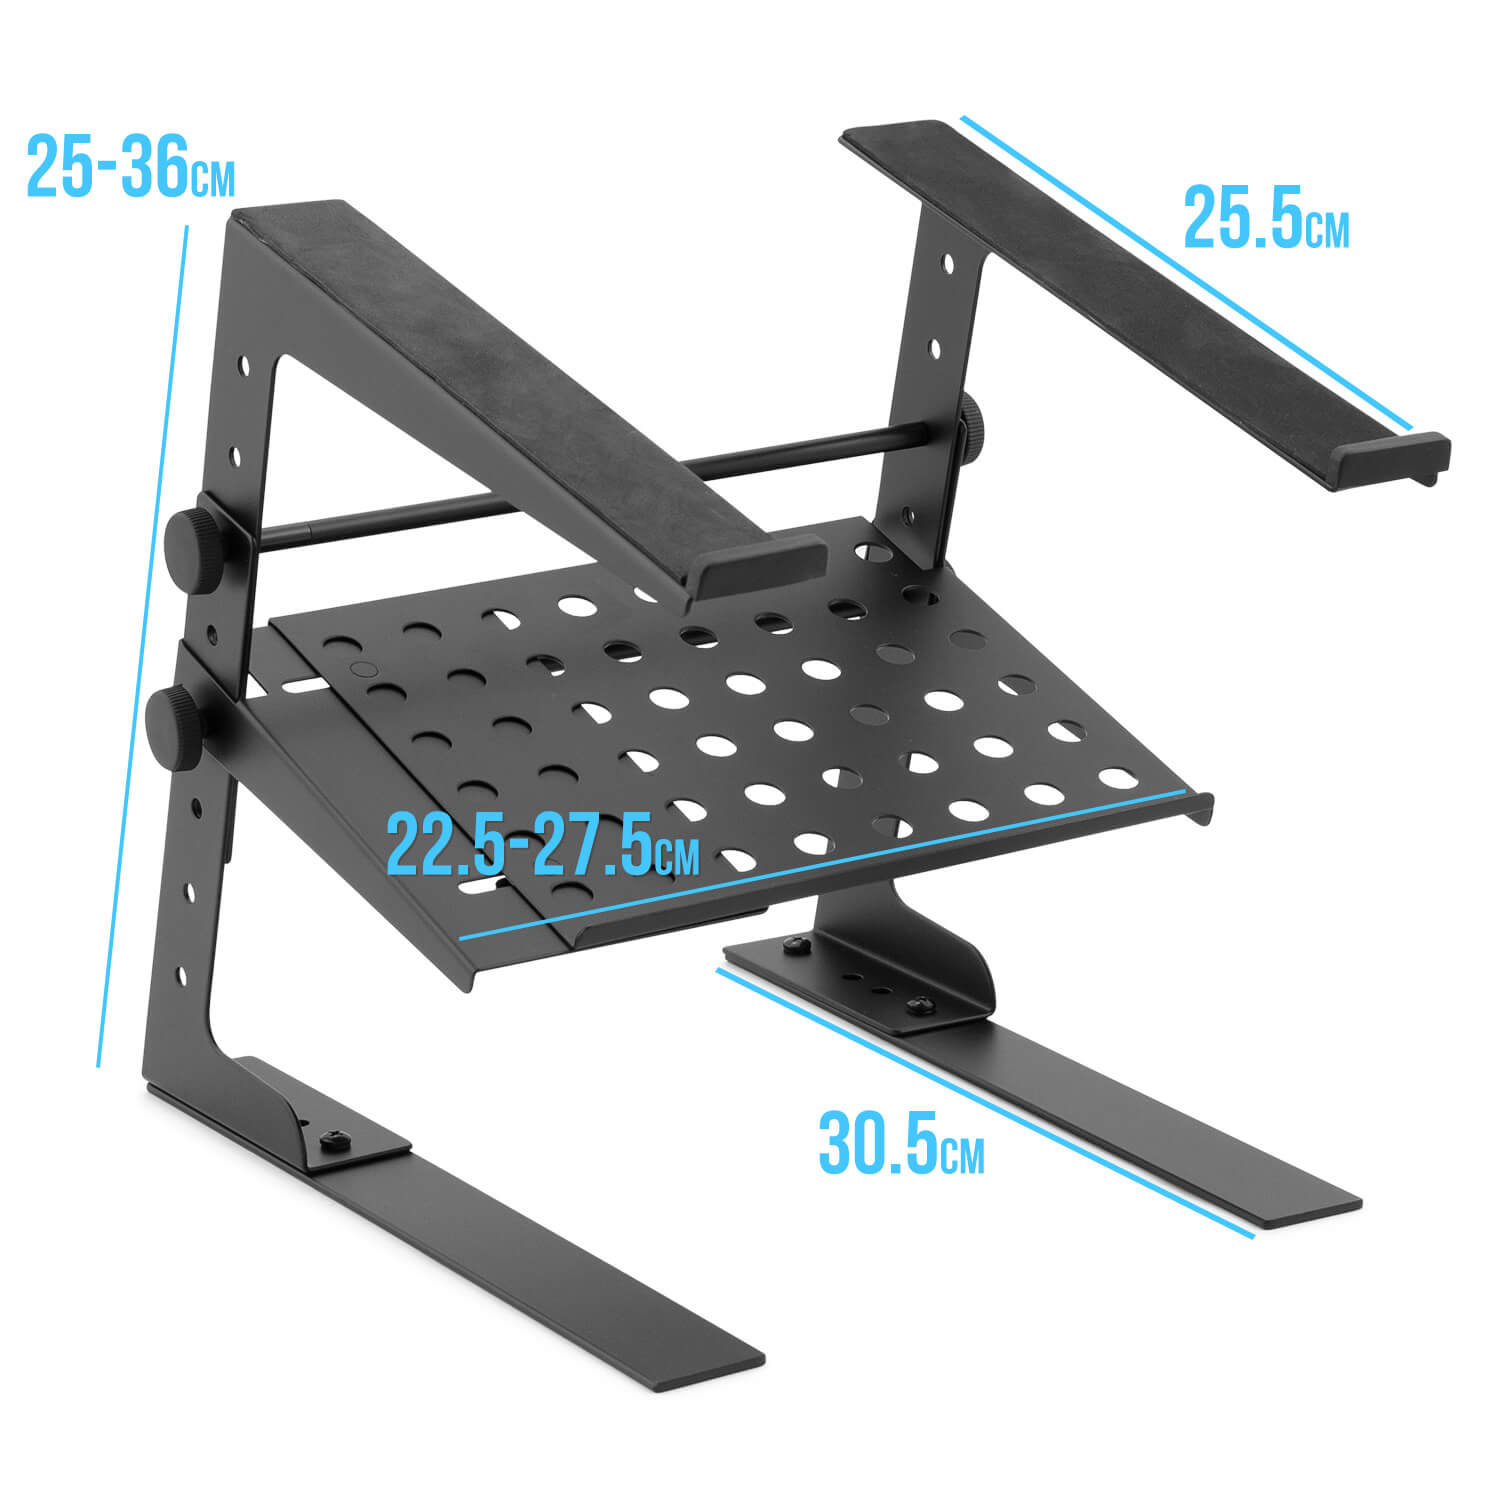 Tiger-Laptop-Stand-DJ-Stand-with-Shelf-and-Desktop-Clamps thumbnail 6